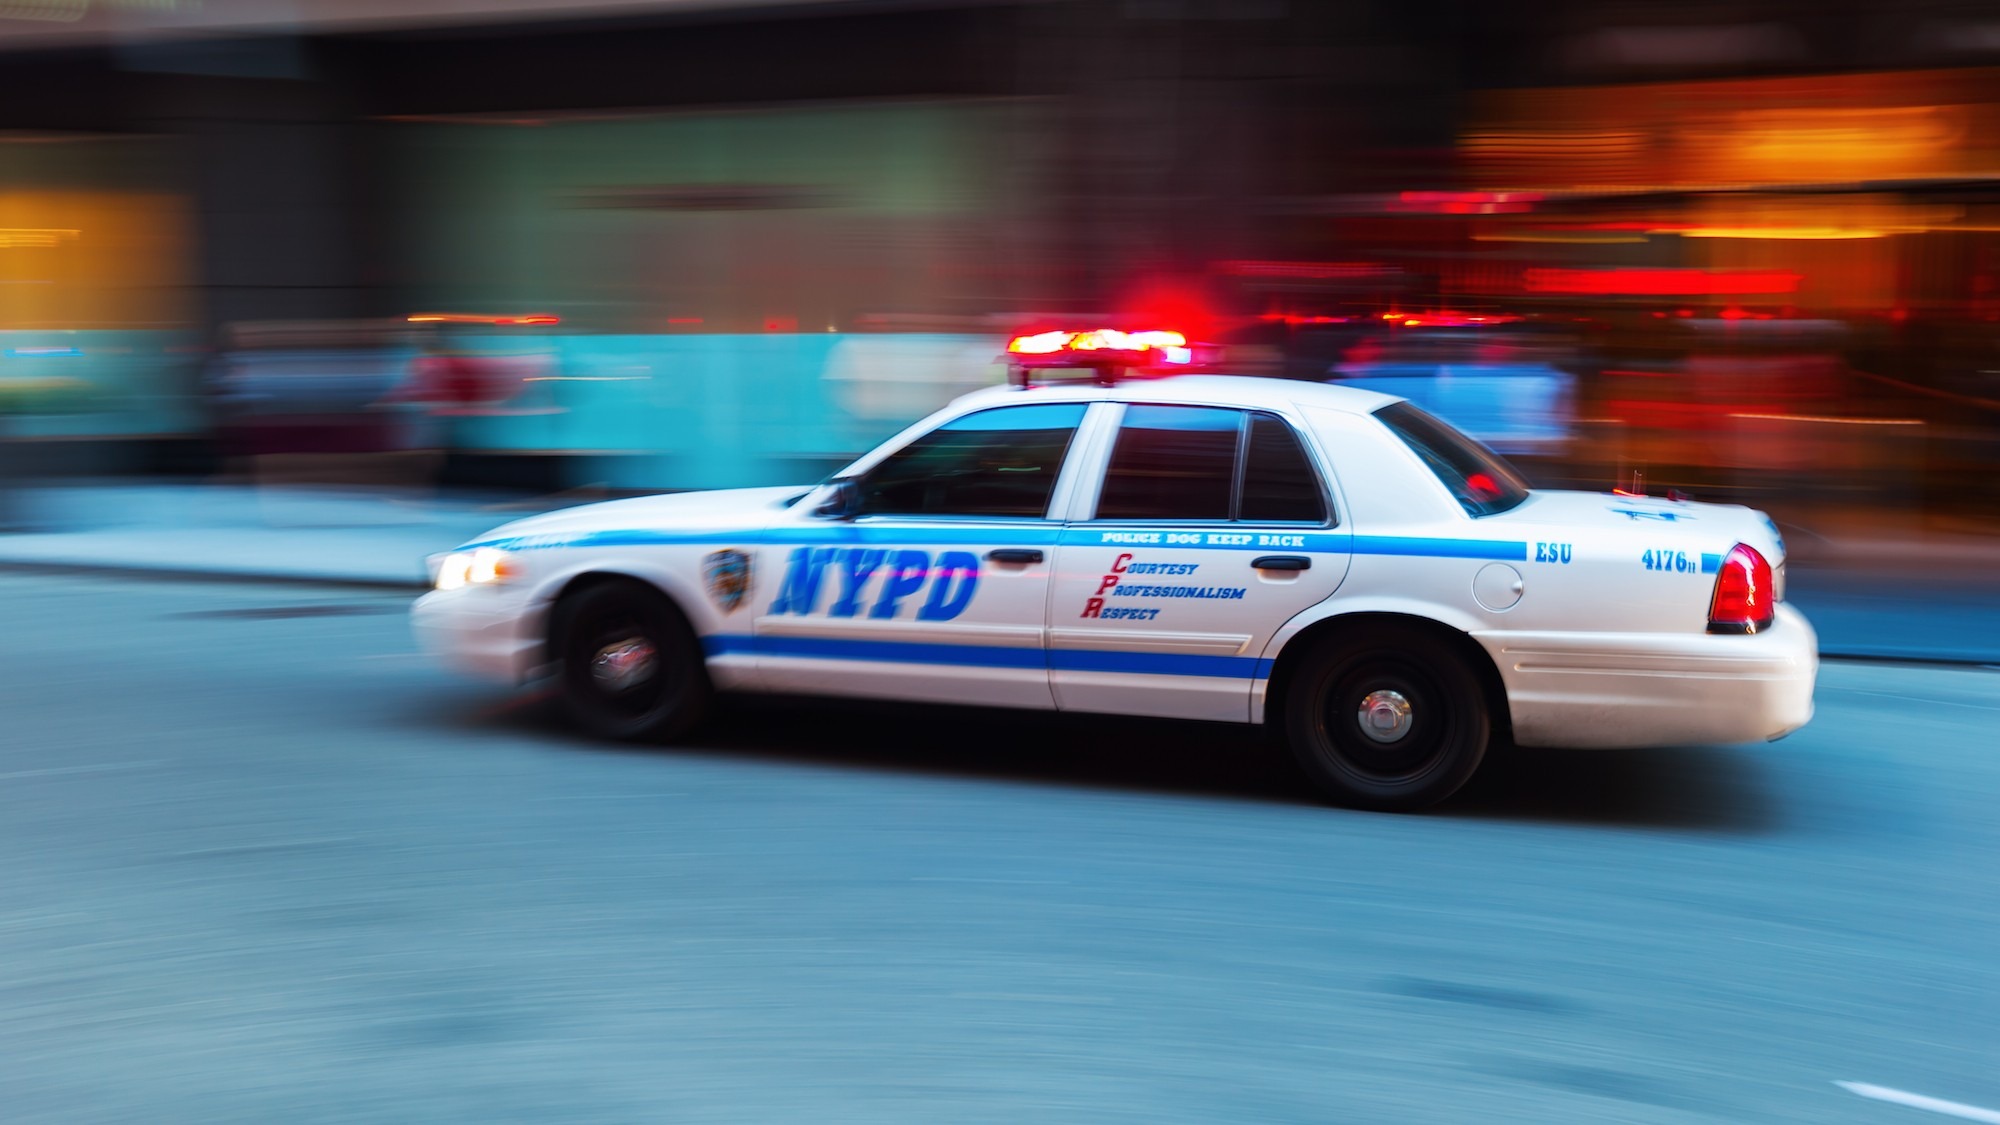 NYPD Says Talking About Its IMSI Catchers Would Make Them Vulnerable to Hacking